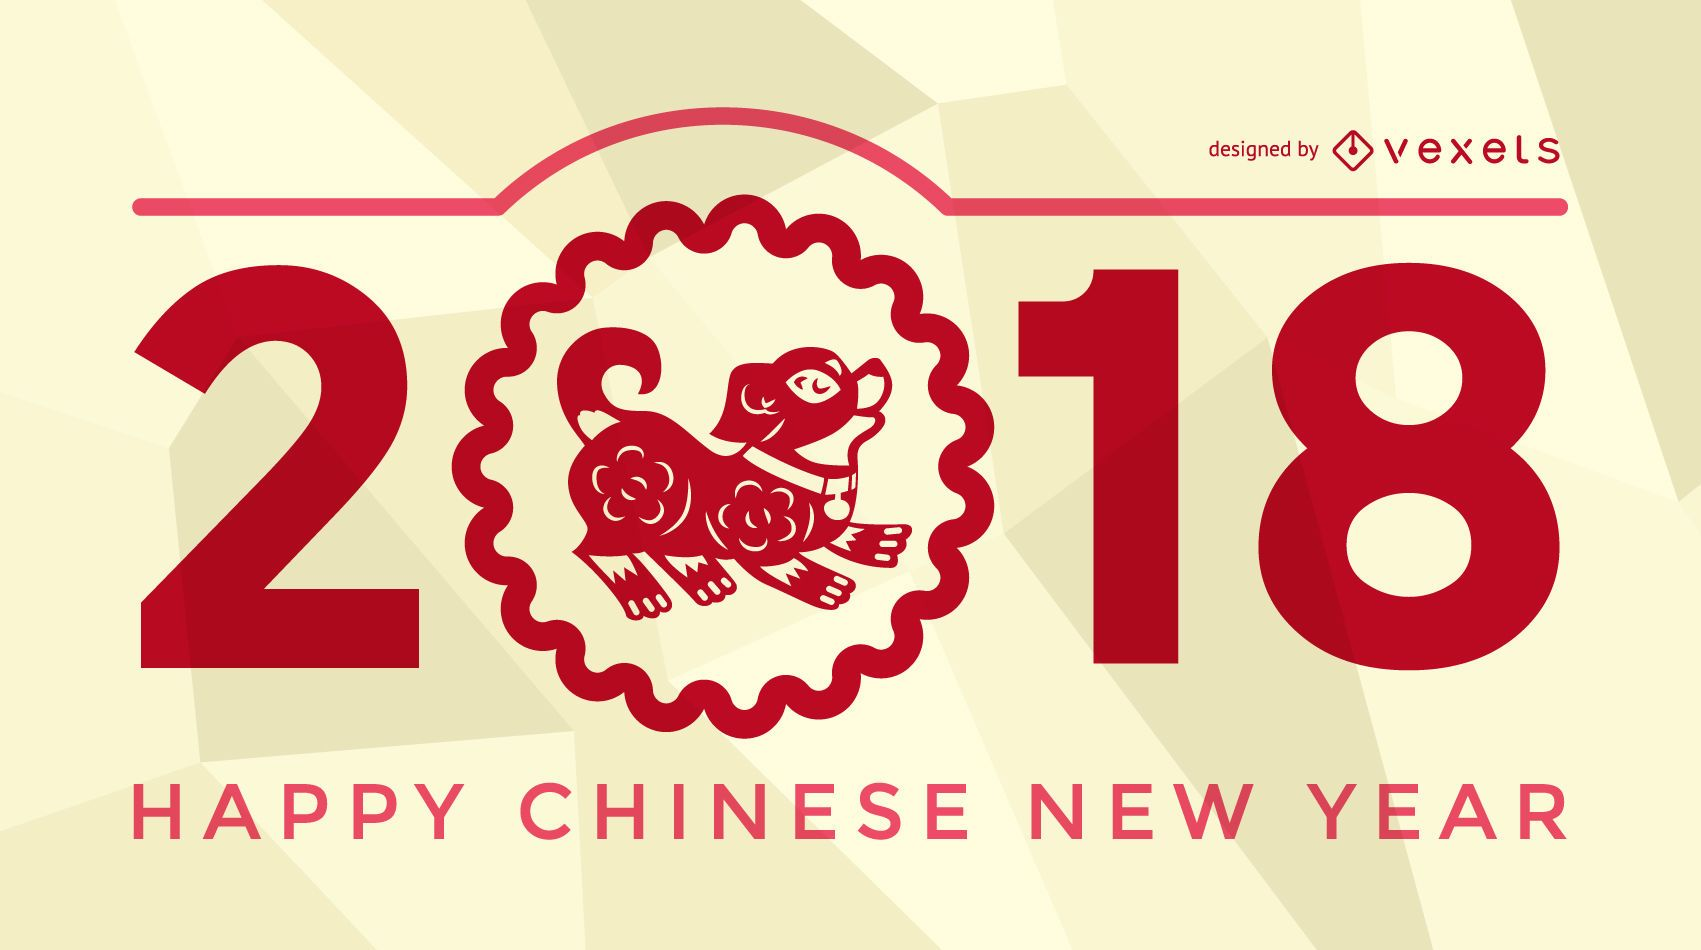 2018 chinese new year maker editable design festive 2018 chinese new year poster kristyandbryce Image collections